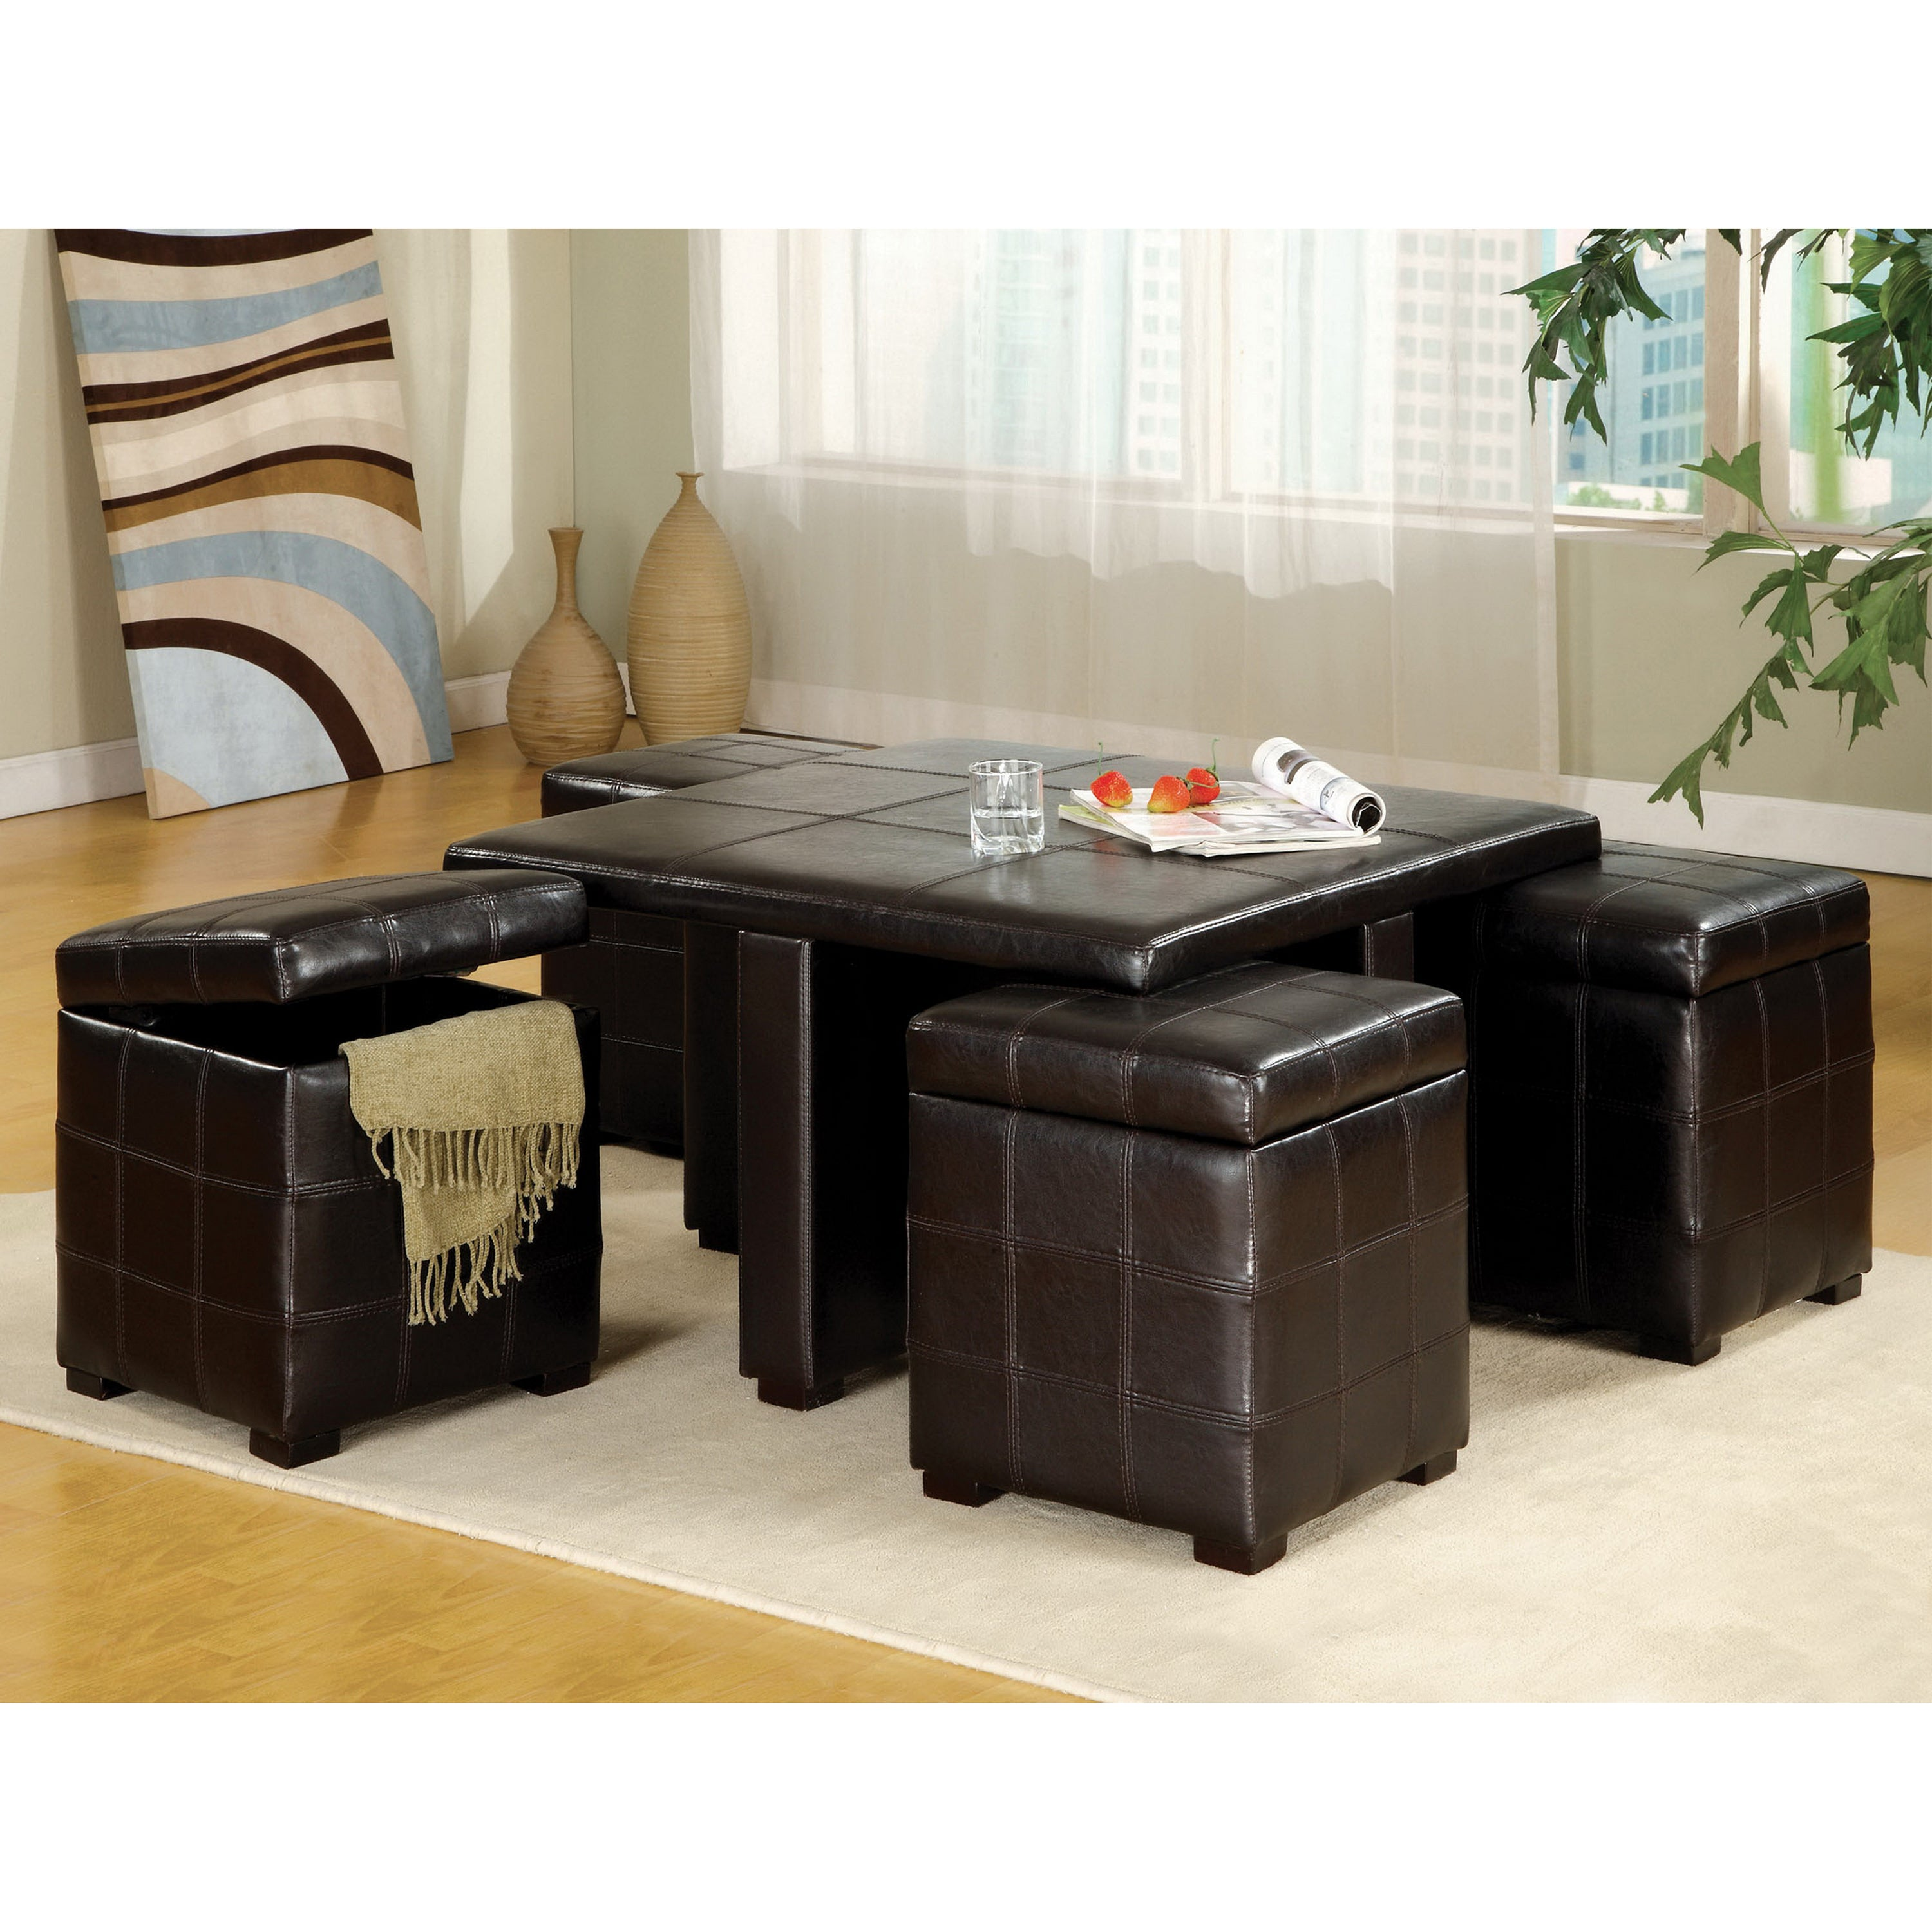 Furniture Of America Espresso 5 Piece Tail Table And Ottoman Set